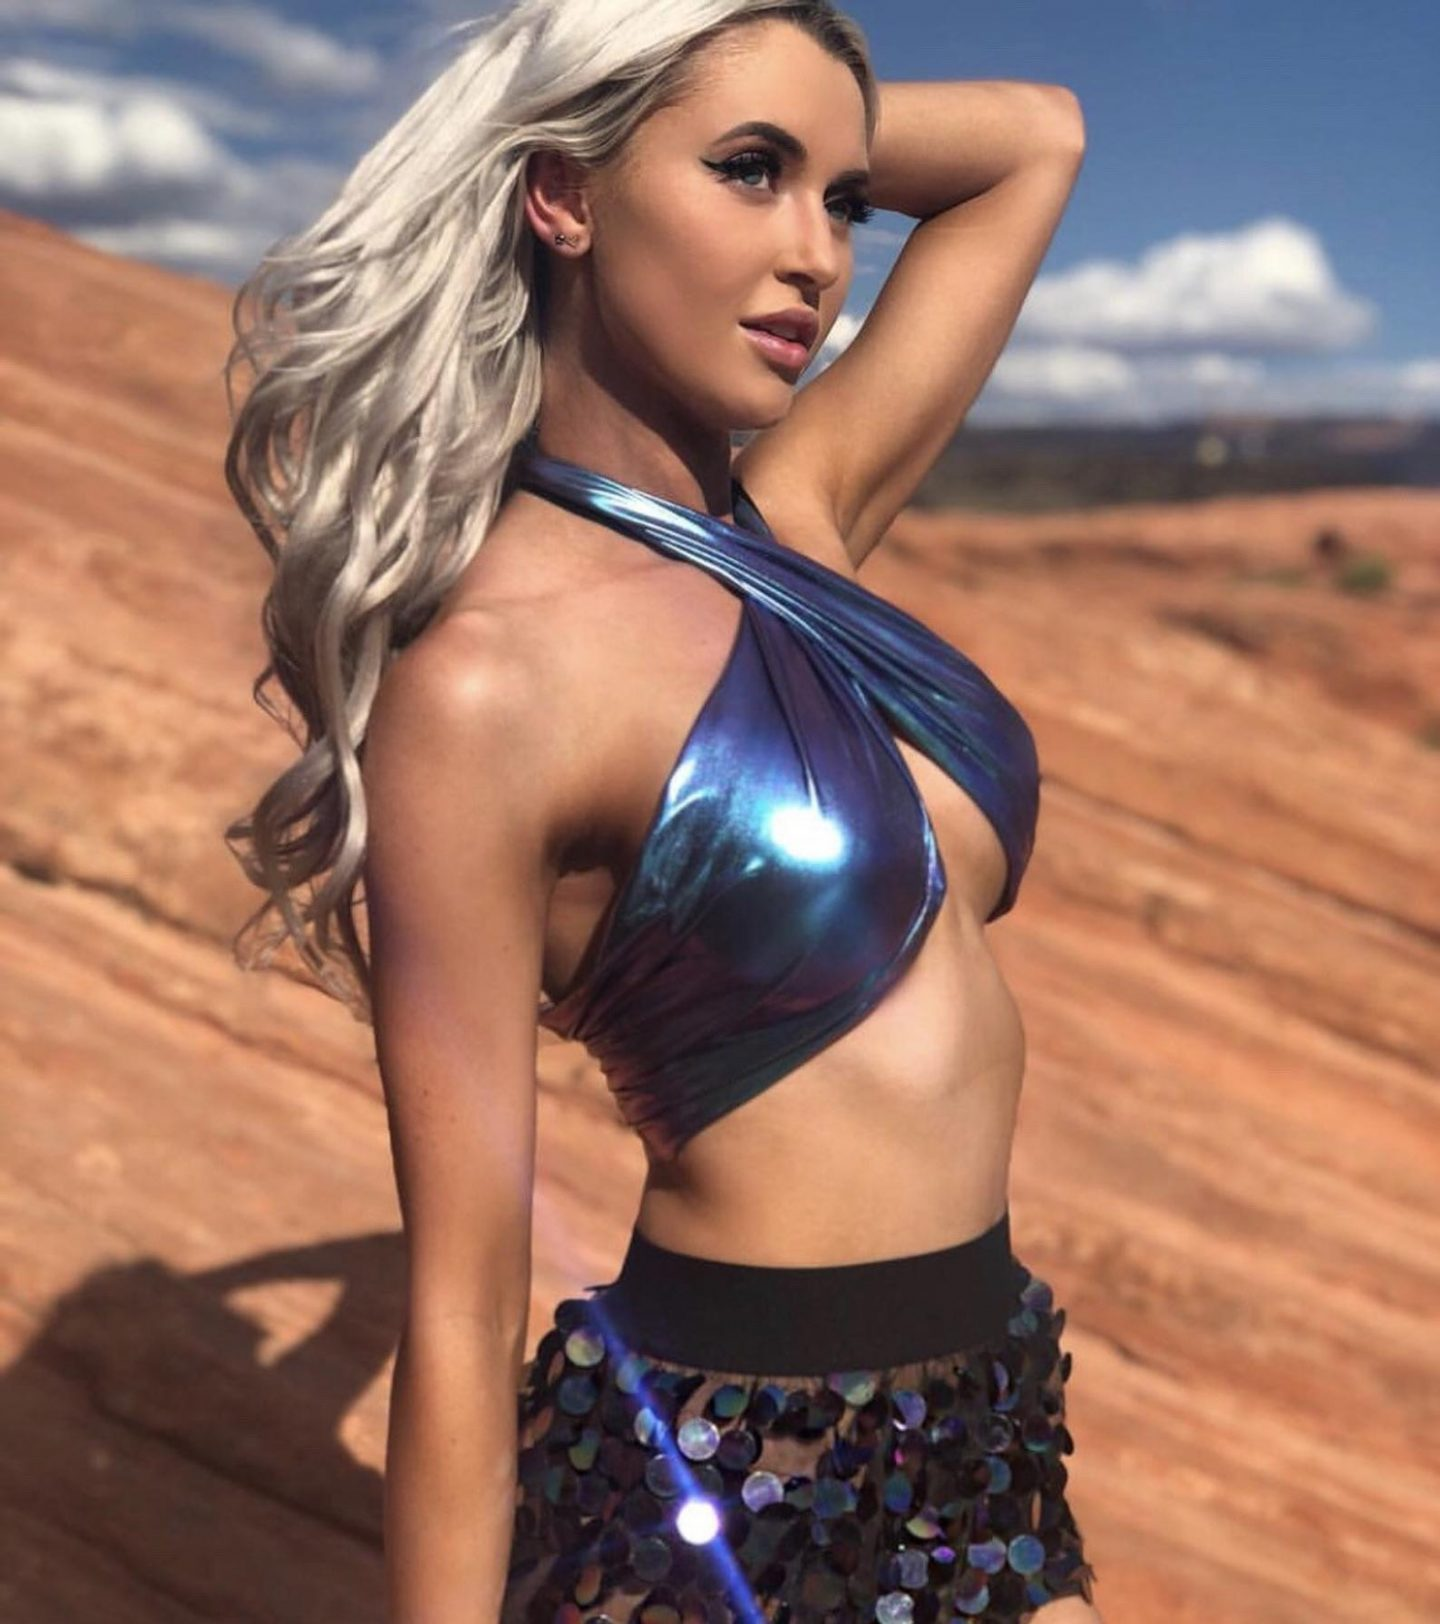 Holographic scarf top for burning man festival